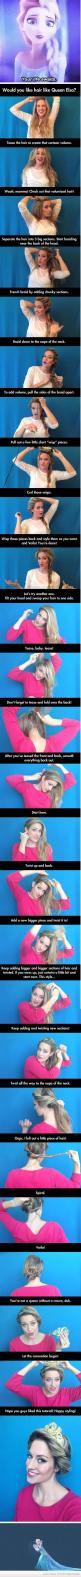 How To Style Your Hair Like Elsa From Frozen.  Adorable!!  Obviously I am obsessed with this movie lol: Hair Tutorials, Hair Styles, Long Hair, Elsa S Hair, Queen Elsa, Disney, Elsa Hairstyles, Elsa Braid